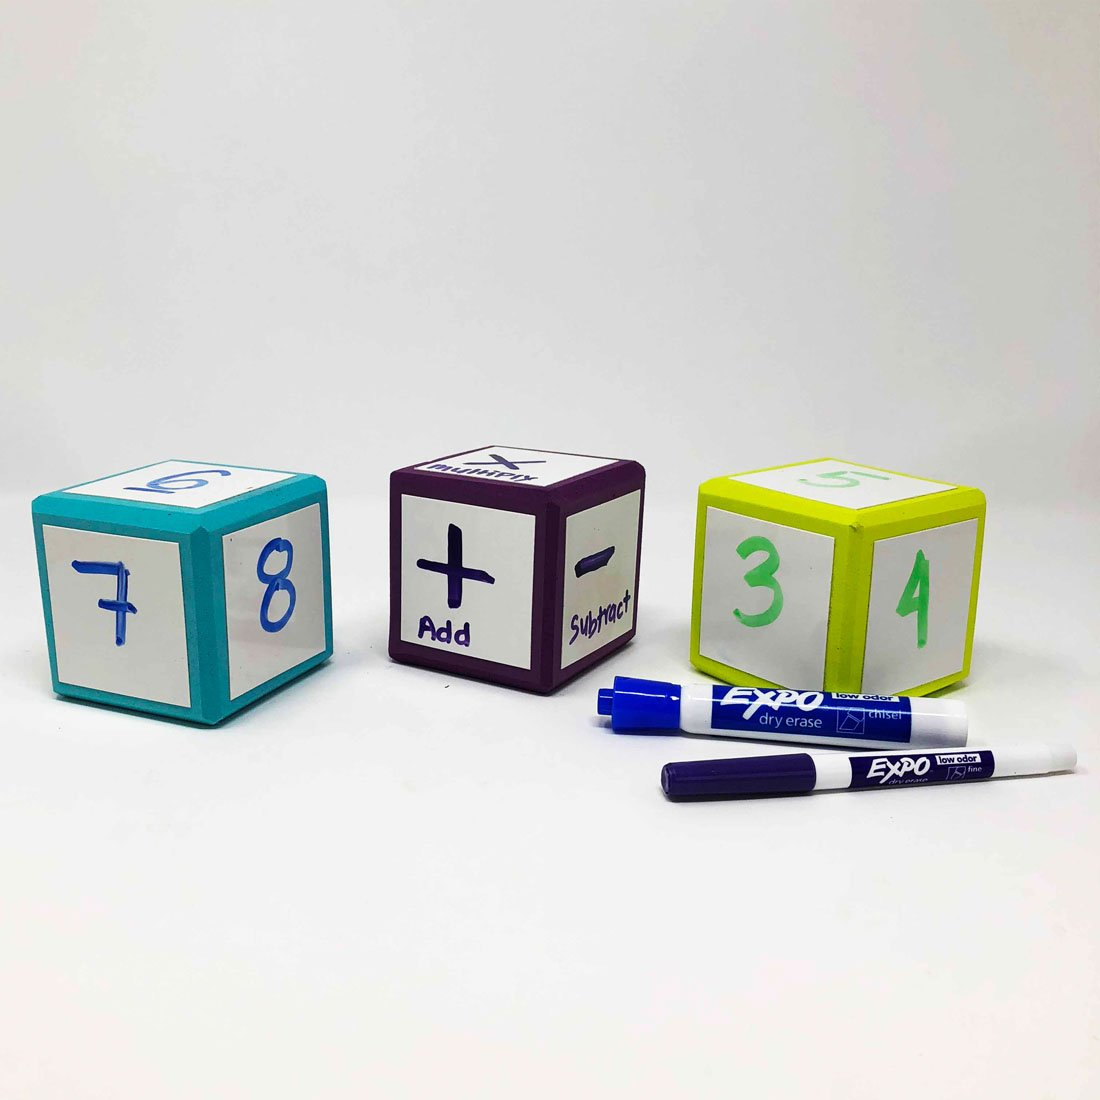 dice-game-with-expo-marker